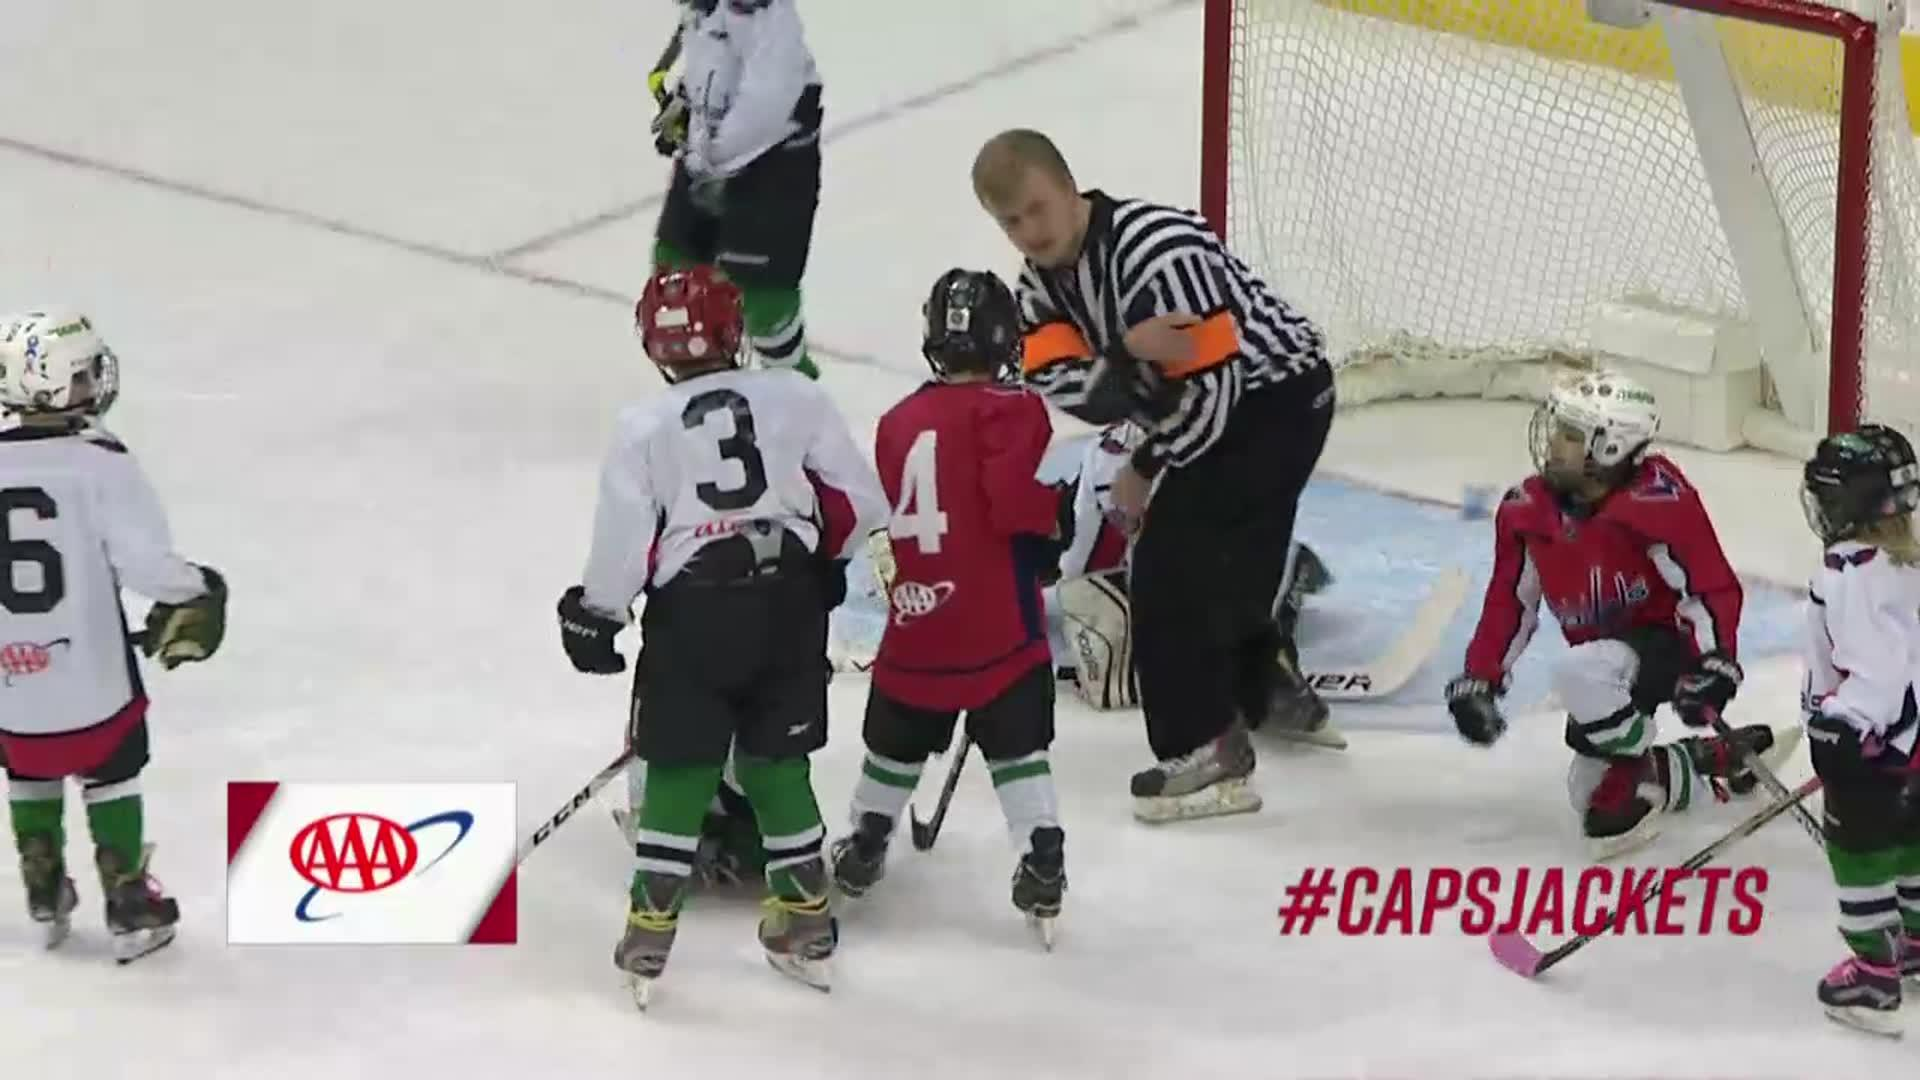 #CapsJackets Mites on Ice 2/9/18